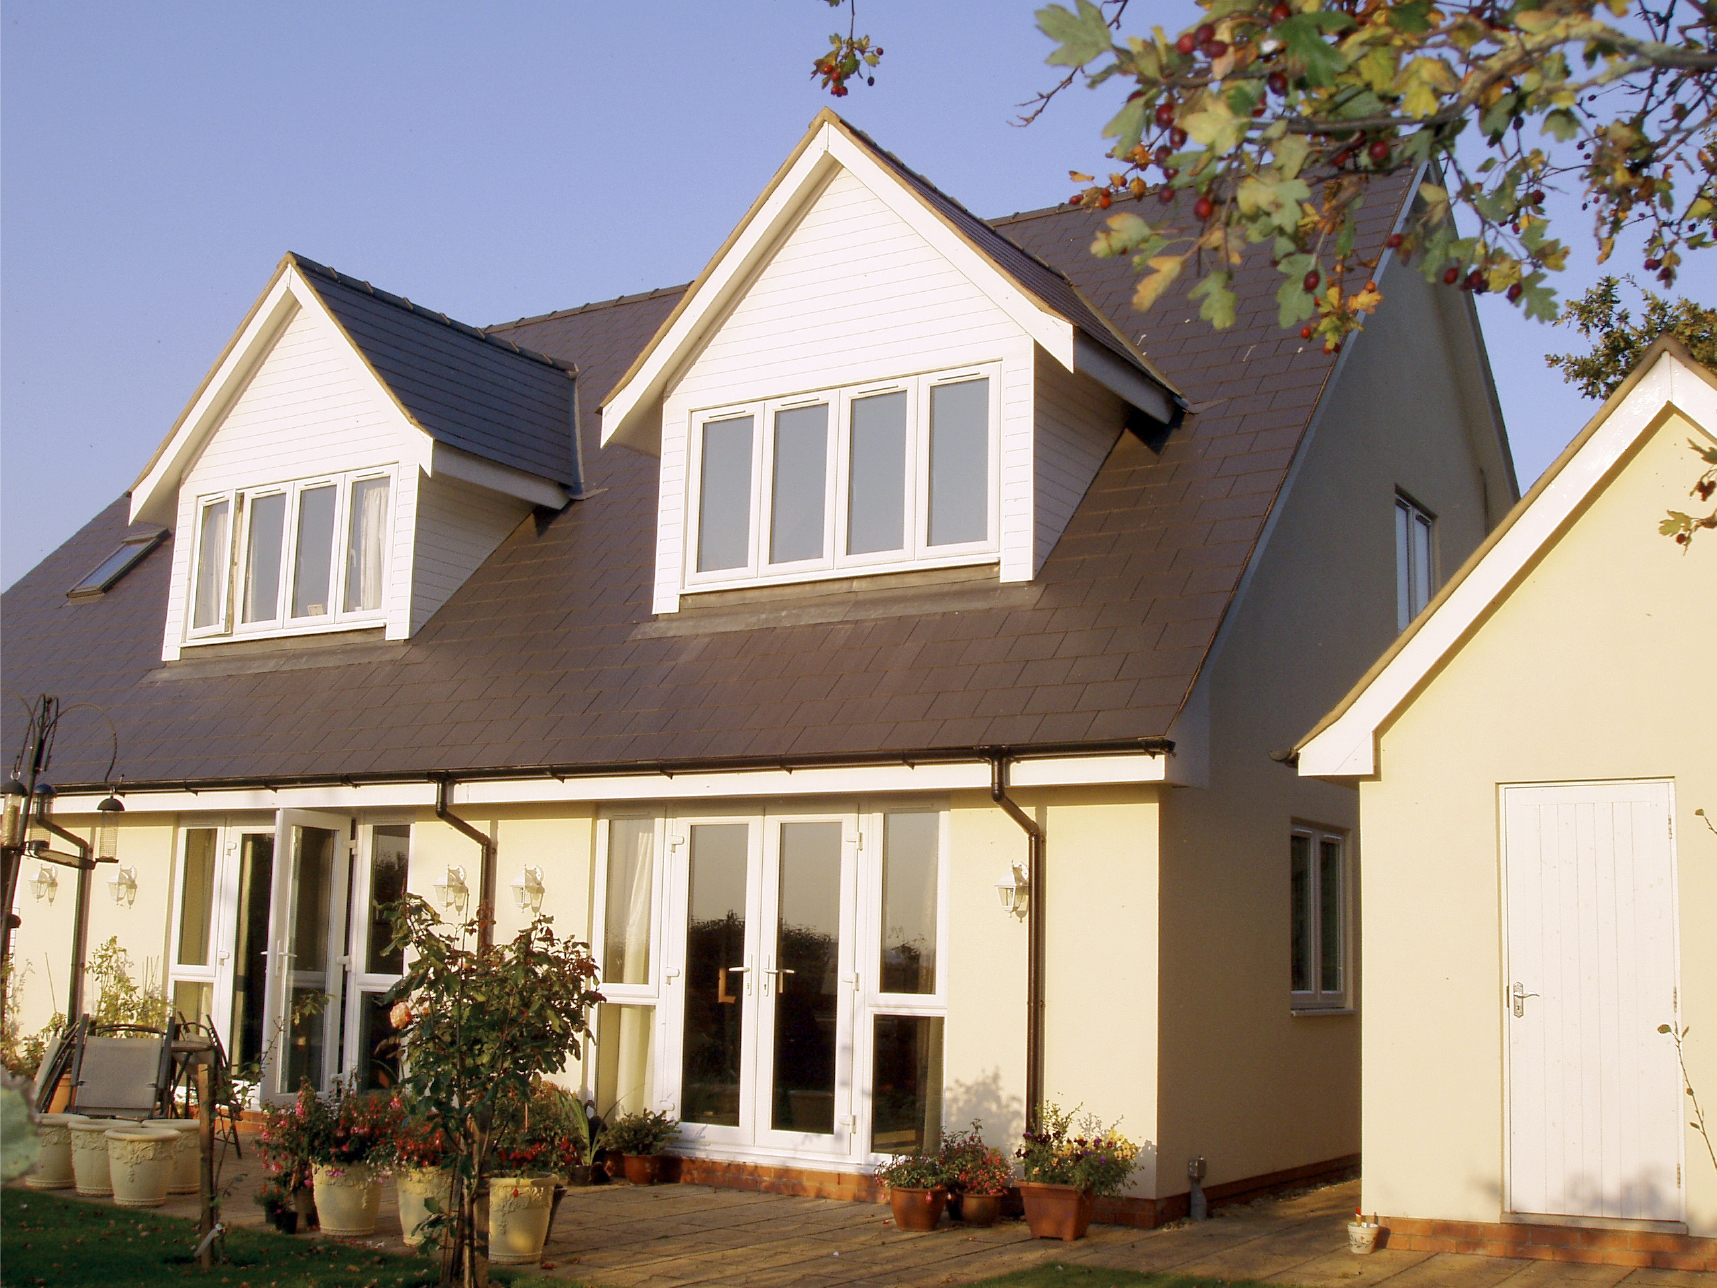 greytree lodge new build ross on wye herefordshire rear elevation photo builder groundworks nhbc.jpg